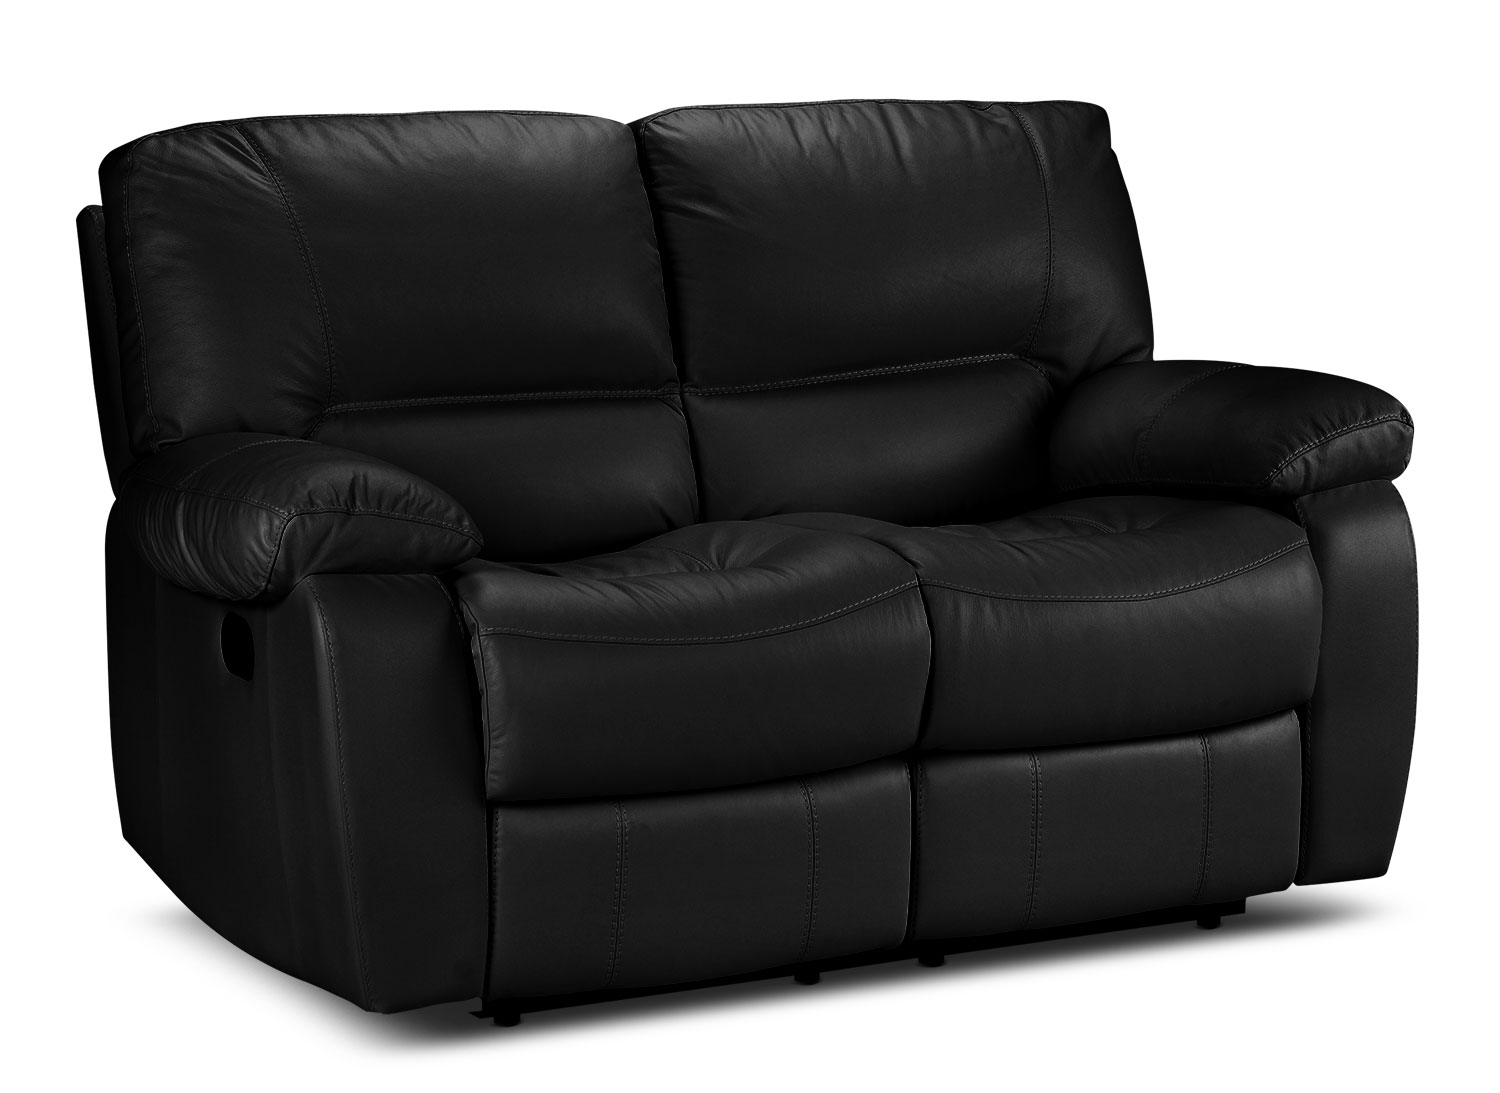 Piermont Reclining Loveseat - Black